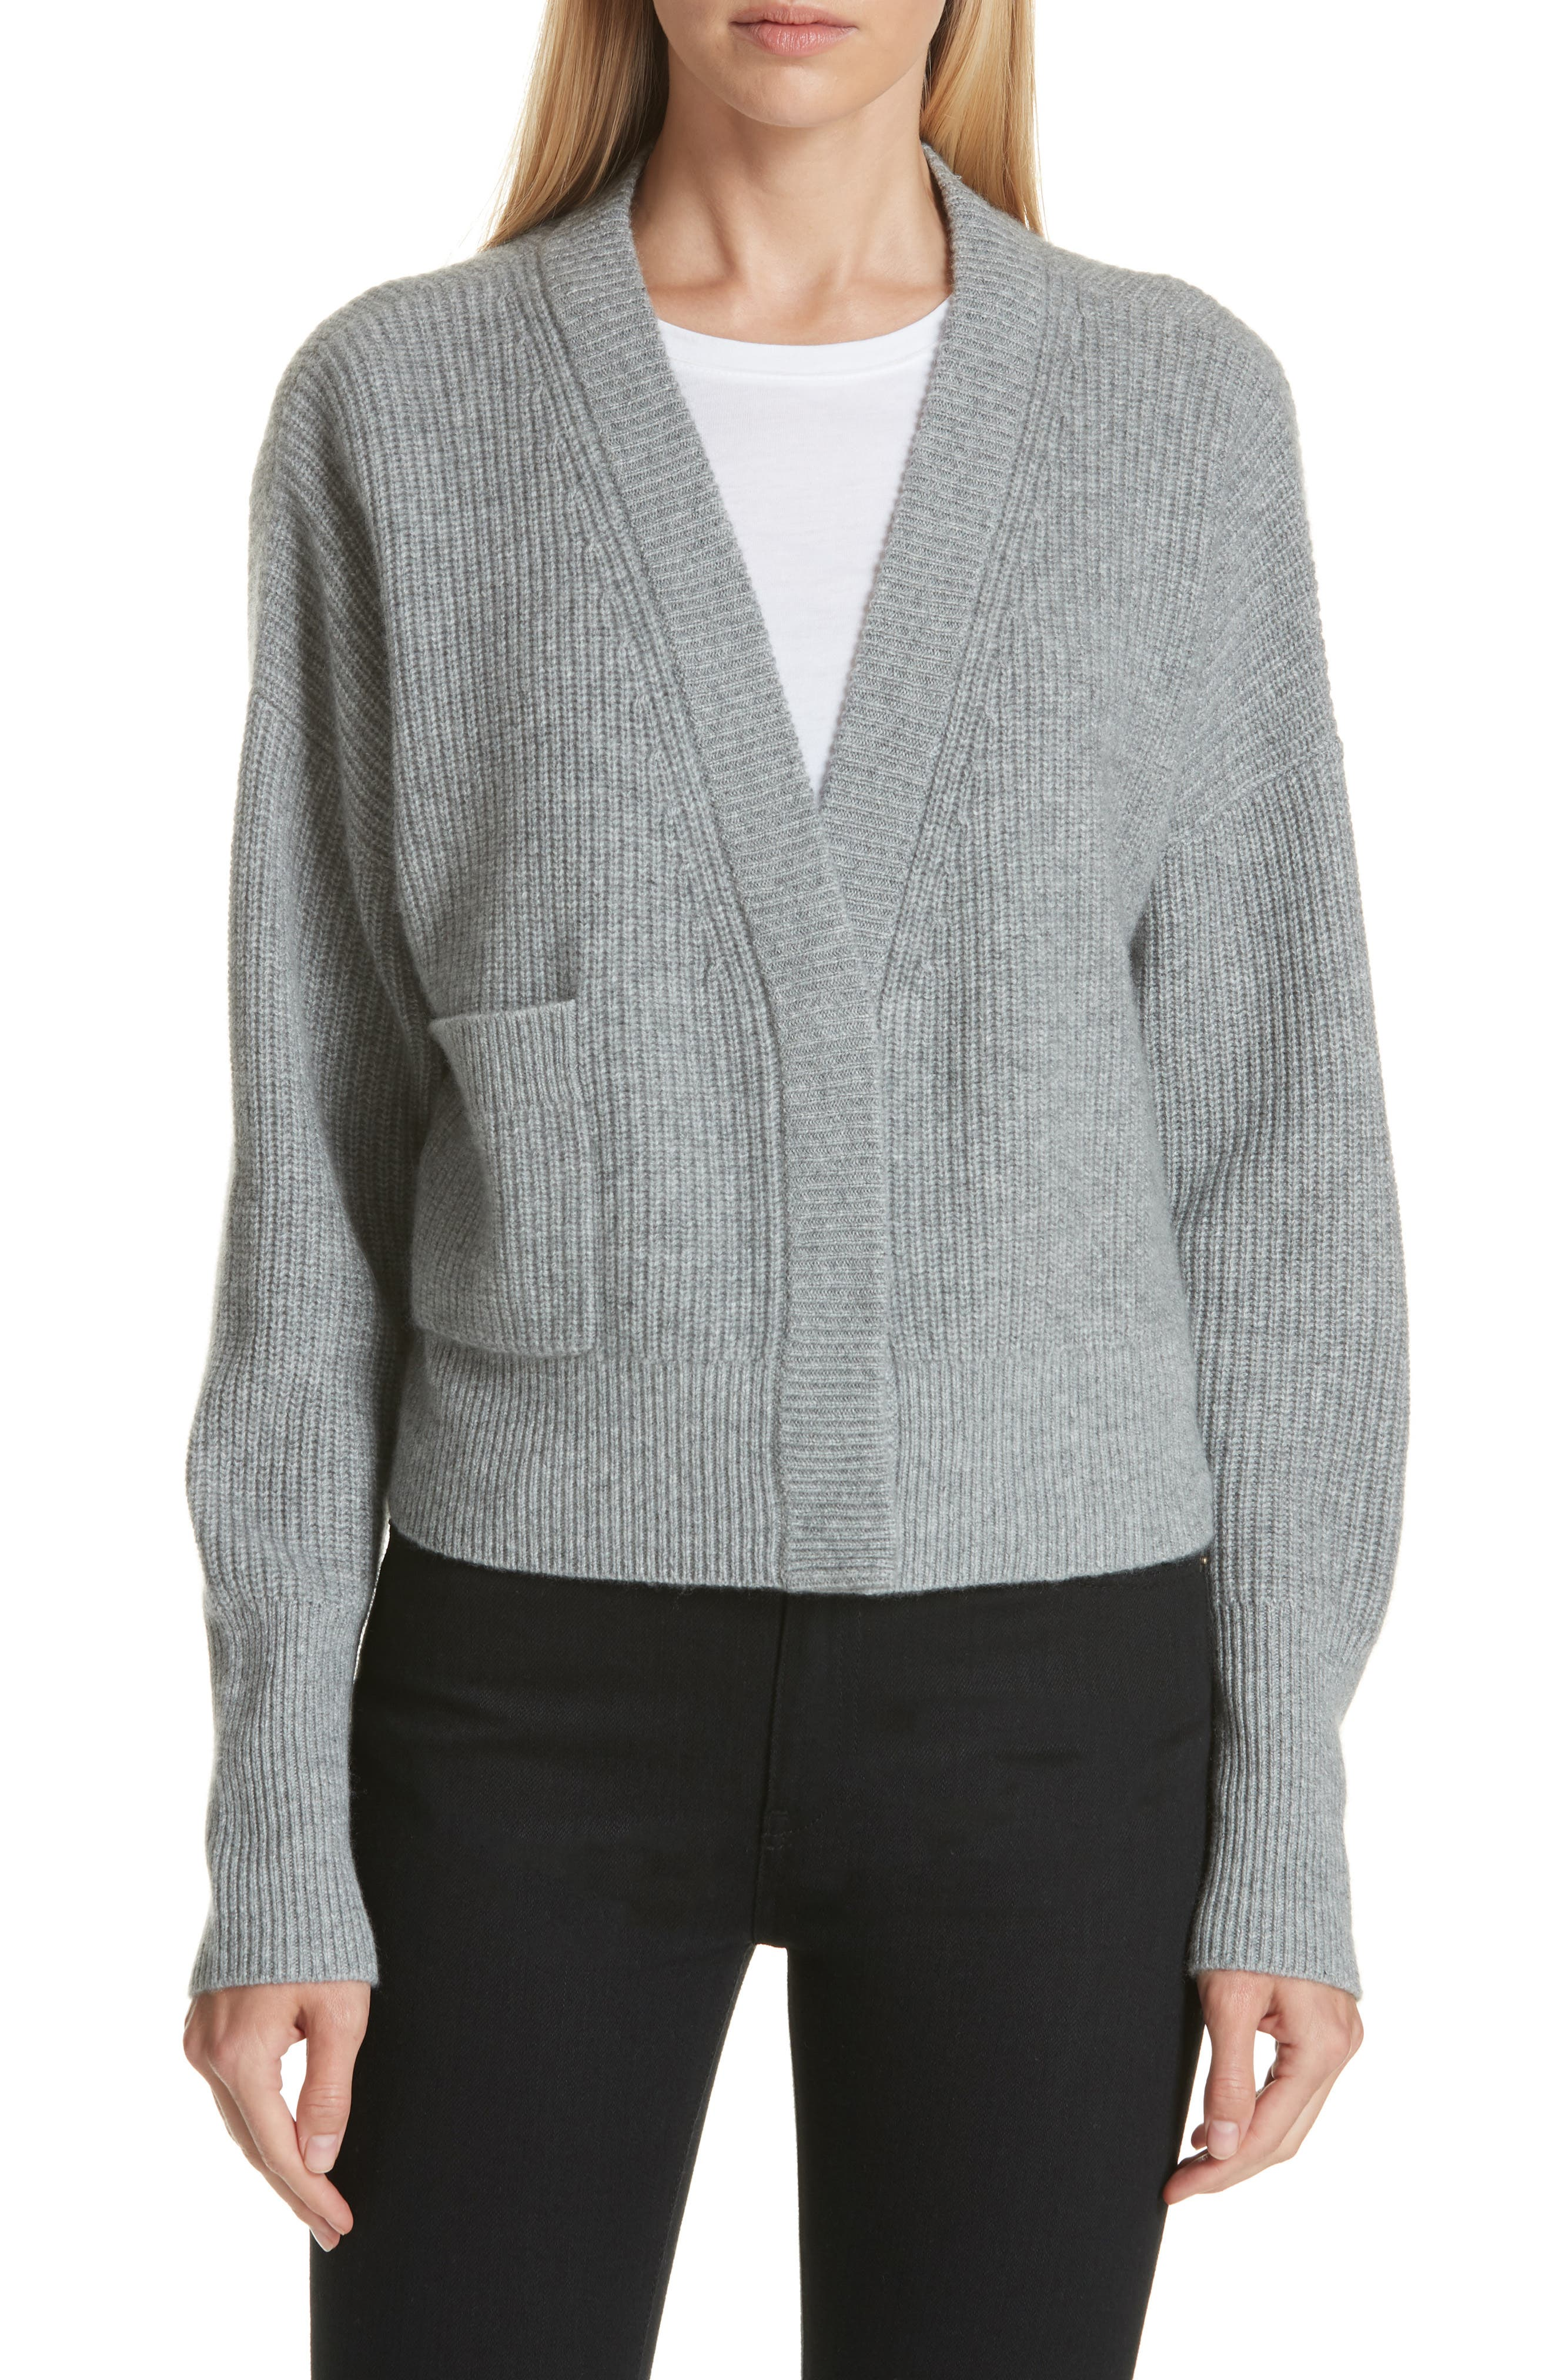 One-Pocket Cashmere Cardigan,                             Main thumbnail 1, color,                             030